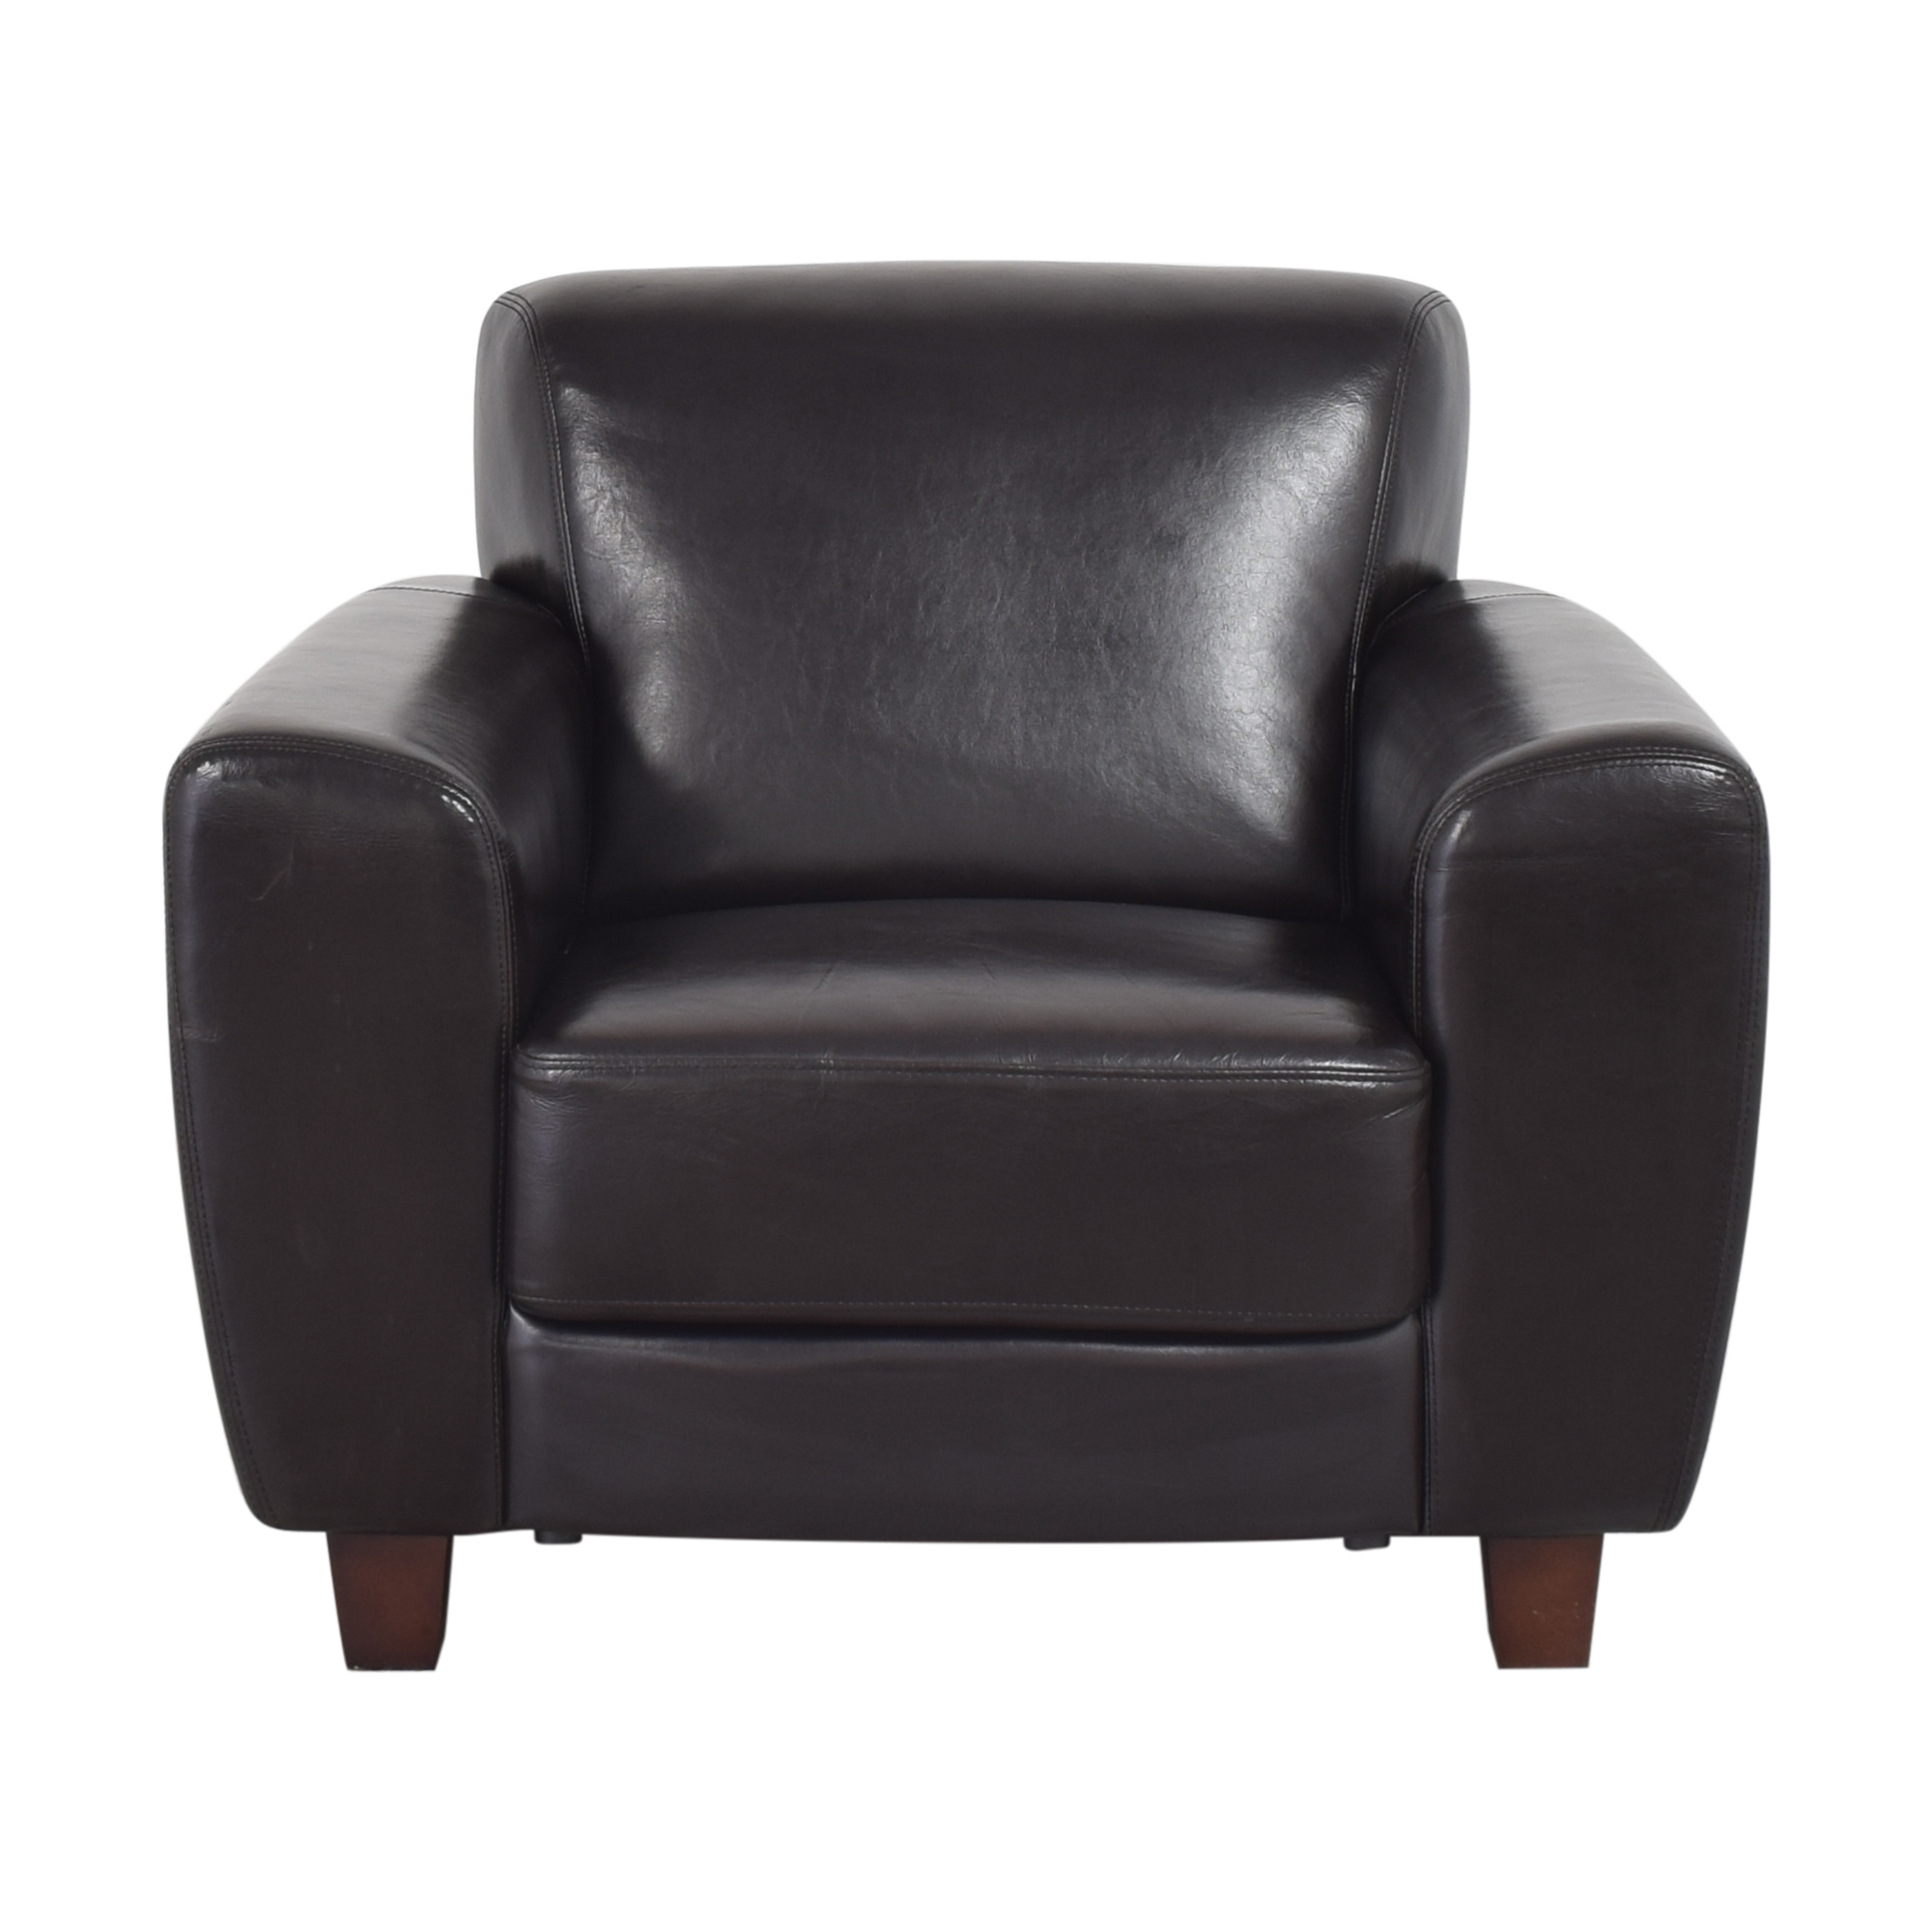 Beverly Hills Furniture Accent Chair / Accent Chairs